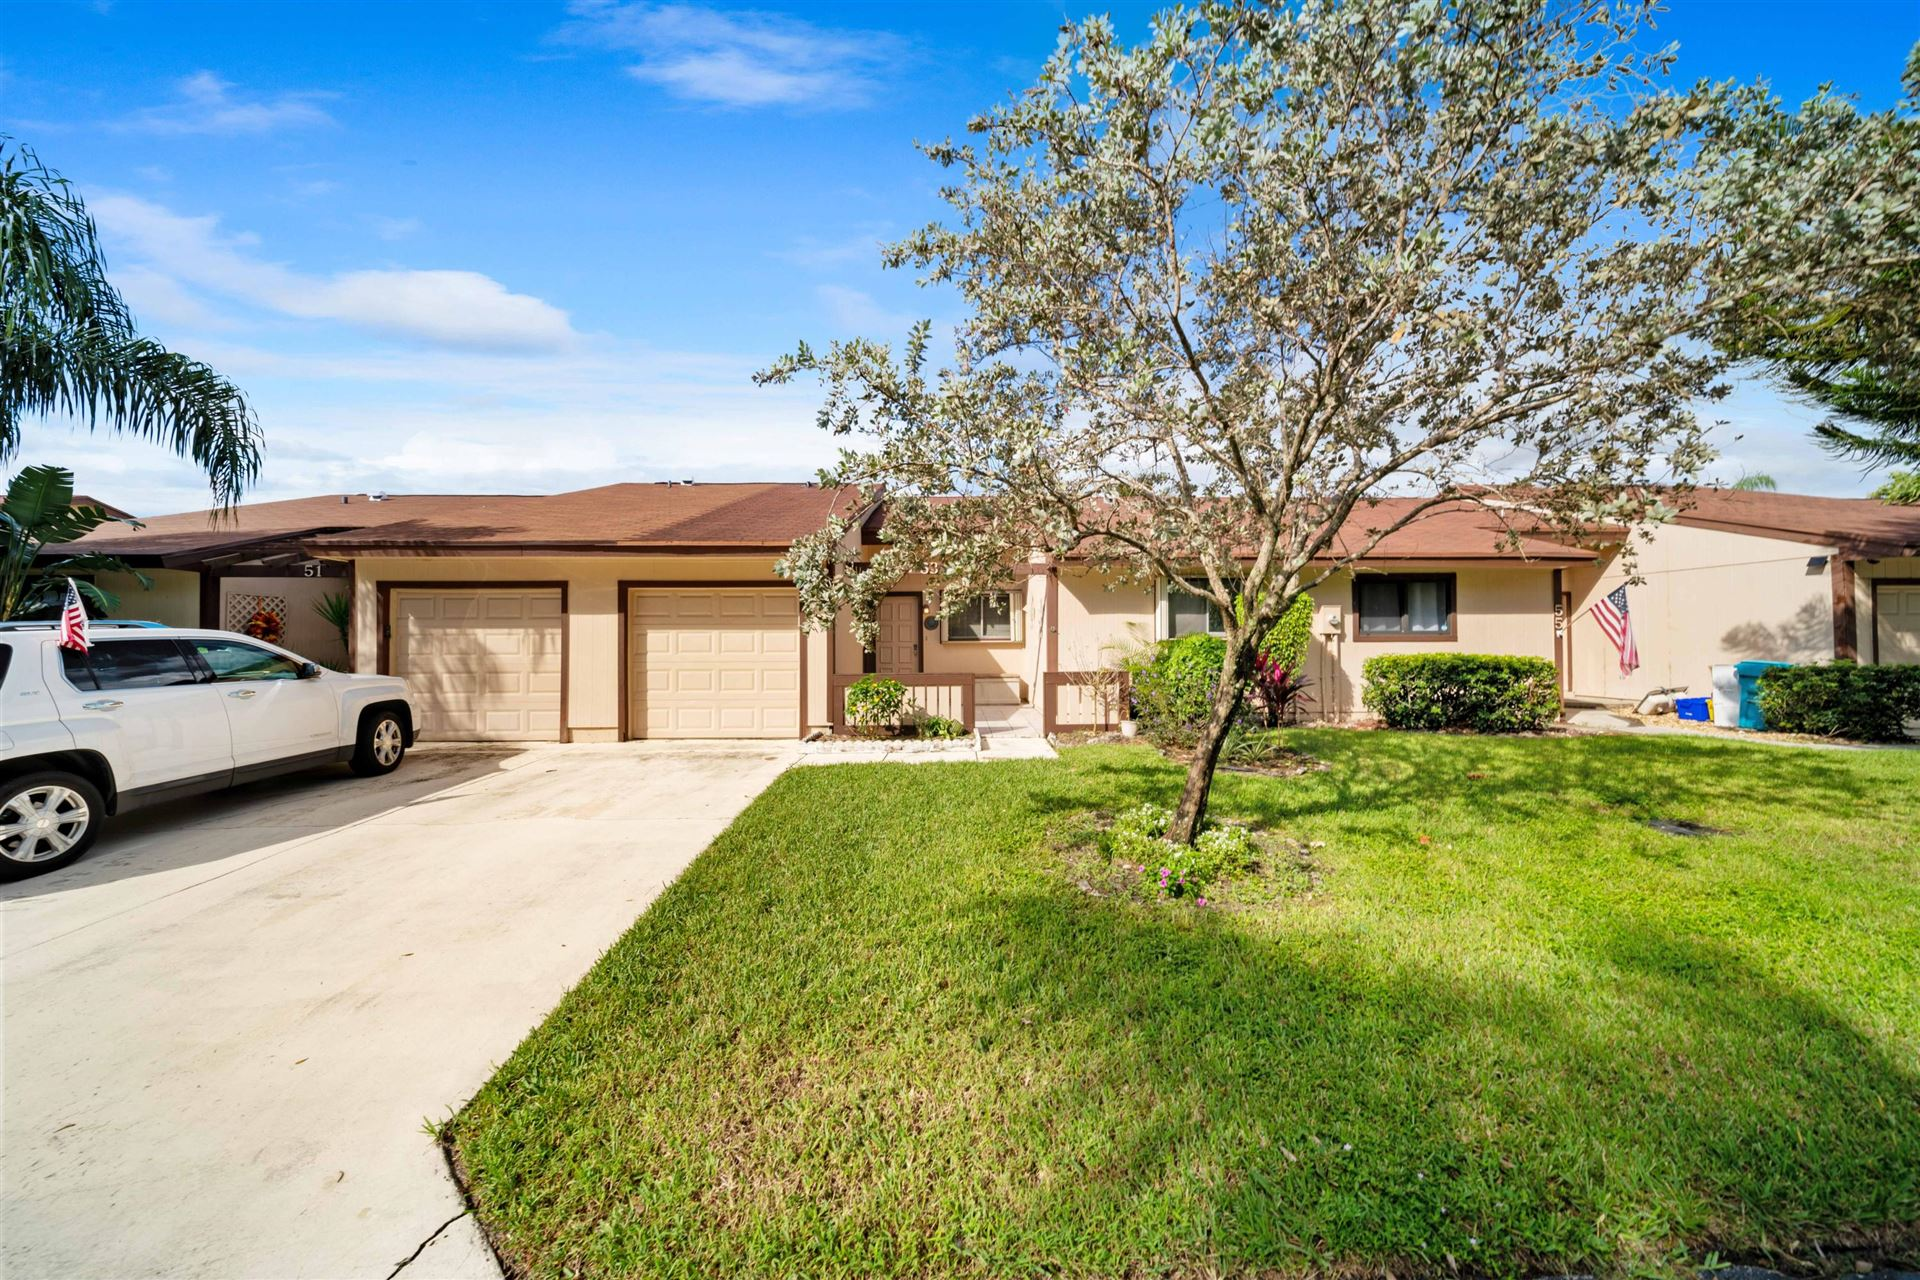 53 Mayfair Lane, Boynton Beach, FL 33426 - #: RX-10673324